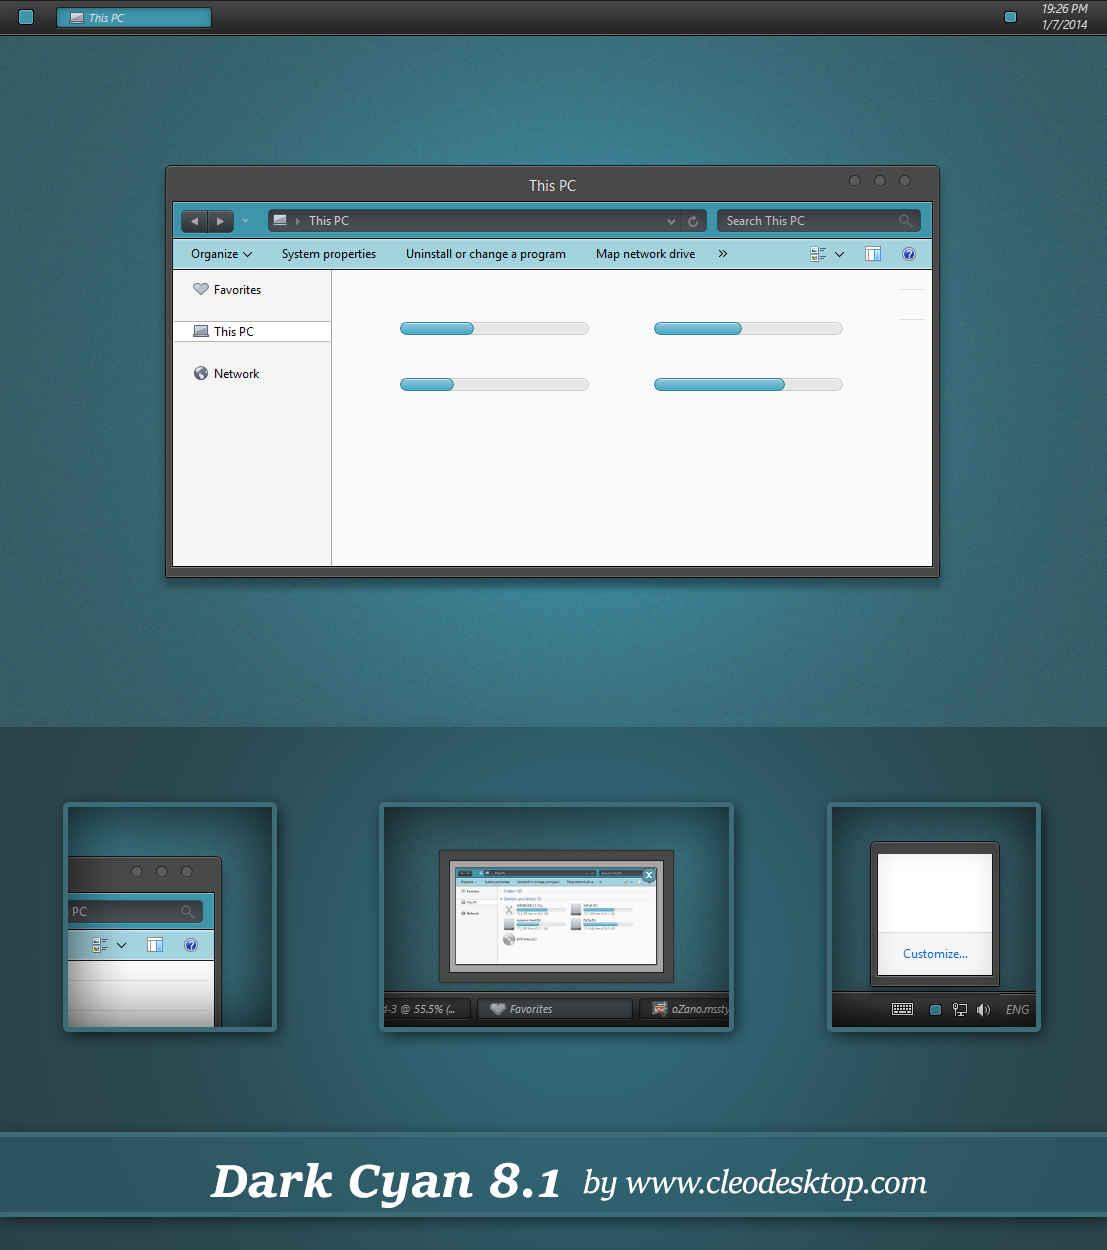 Dark Cyan Theme Windows 8.1